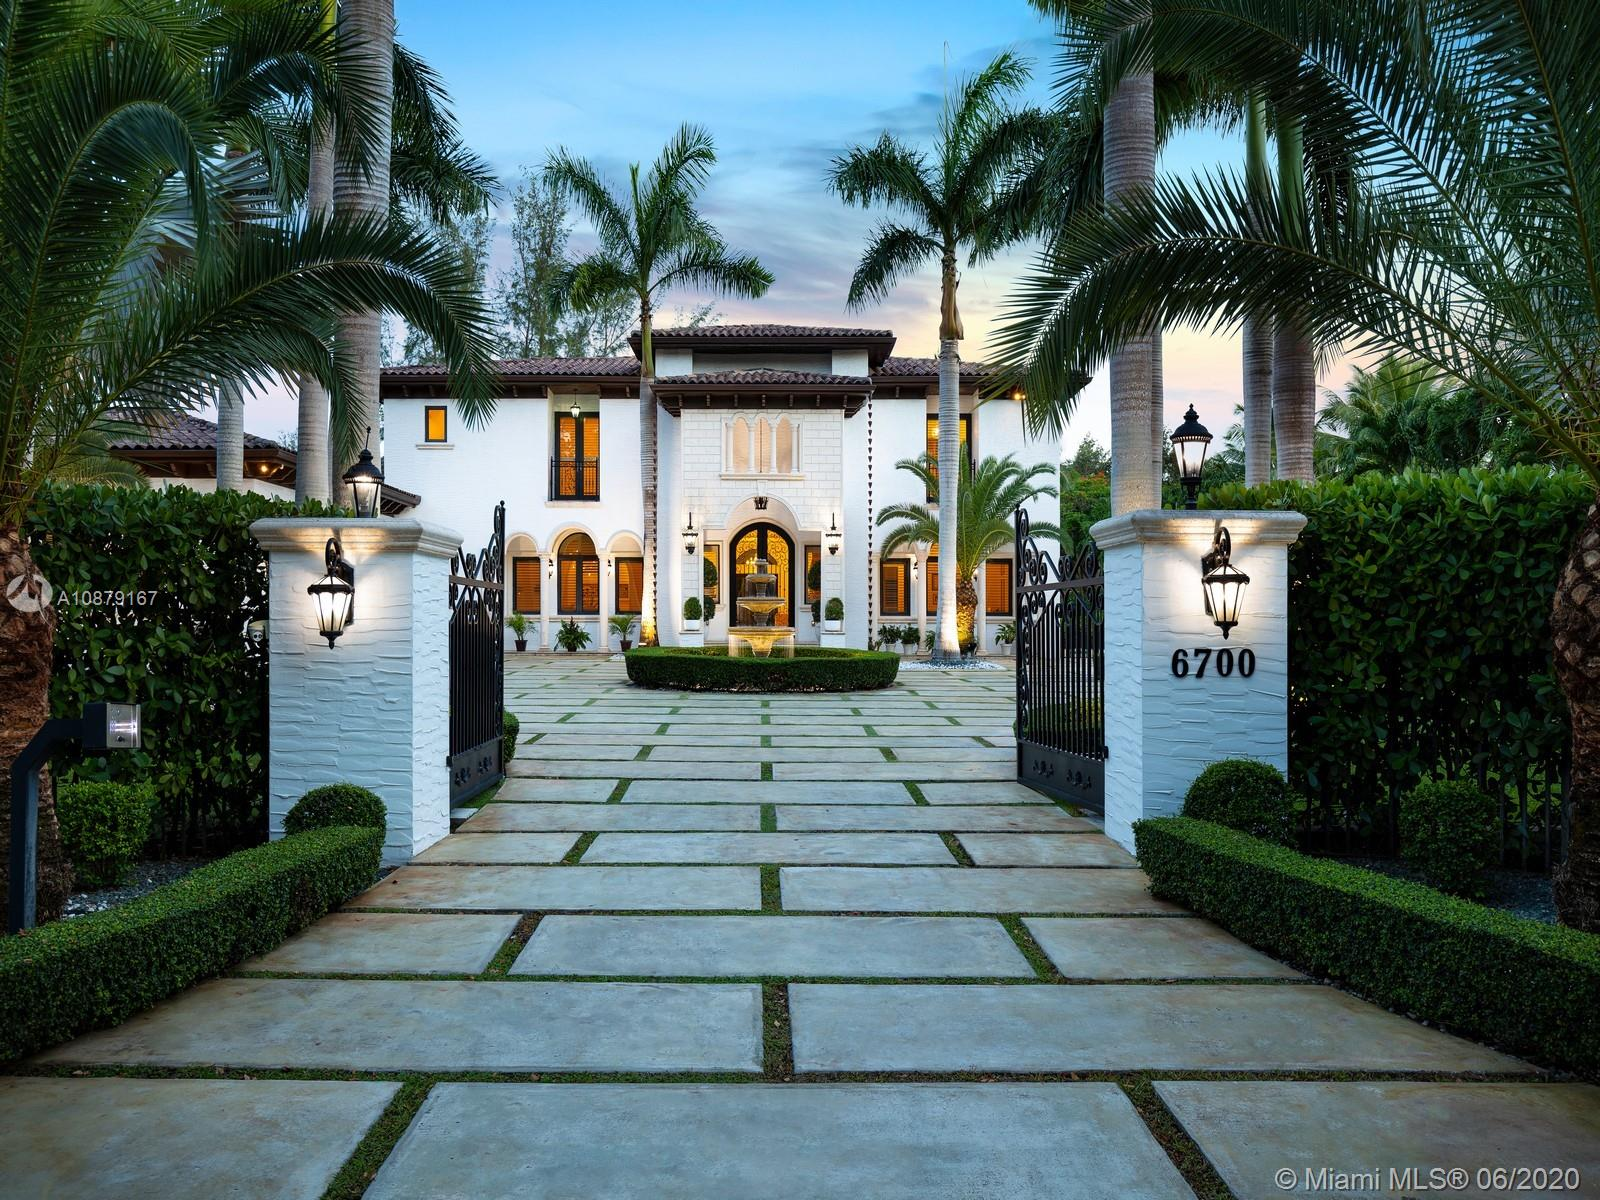 Extraordinary one acre + estate located in South Miami. Surrounded by manicured and pristine landscaping, this stunning corner property lies behind private gates showcasing an exquisite entrance and water feature. Greeted by a grand foyer and a splendid staircase, discover an open and spacious living room, dining room, custom designed kitchen with wet bar, temperature-controlled wine cellar, and family room. Elegant master suite with spa like bath and private terrace overlooking the outdoor oasis. Outdoor living awaits with a great veranda, ample lounging space with a fully equipped summer kitchen offering stunning views to the pool and spa, enjoy bountiful tropical fruit trees and ample green grounds. Extra Features: office/game room, elevator, 3 car garage.